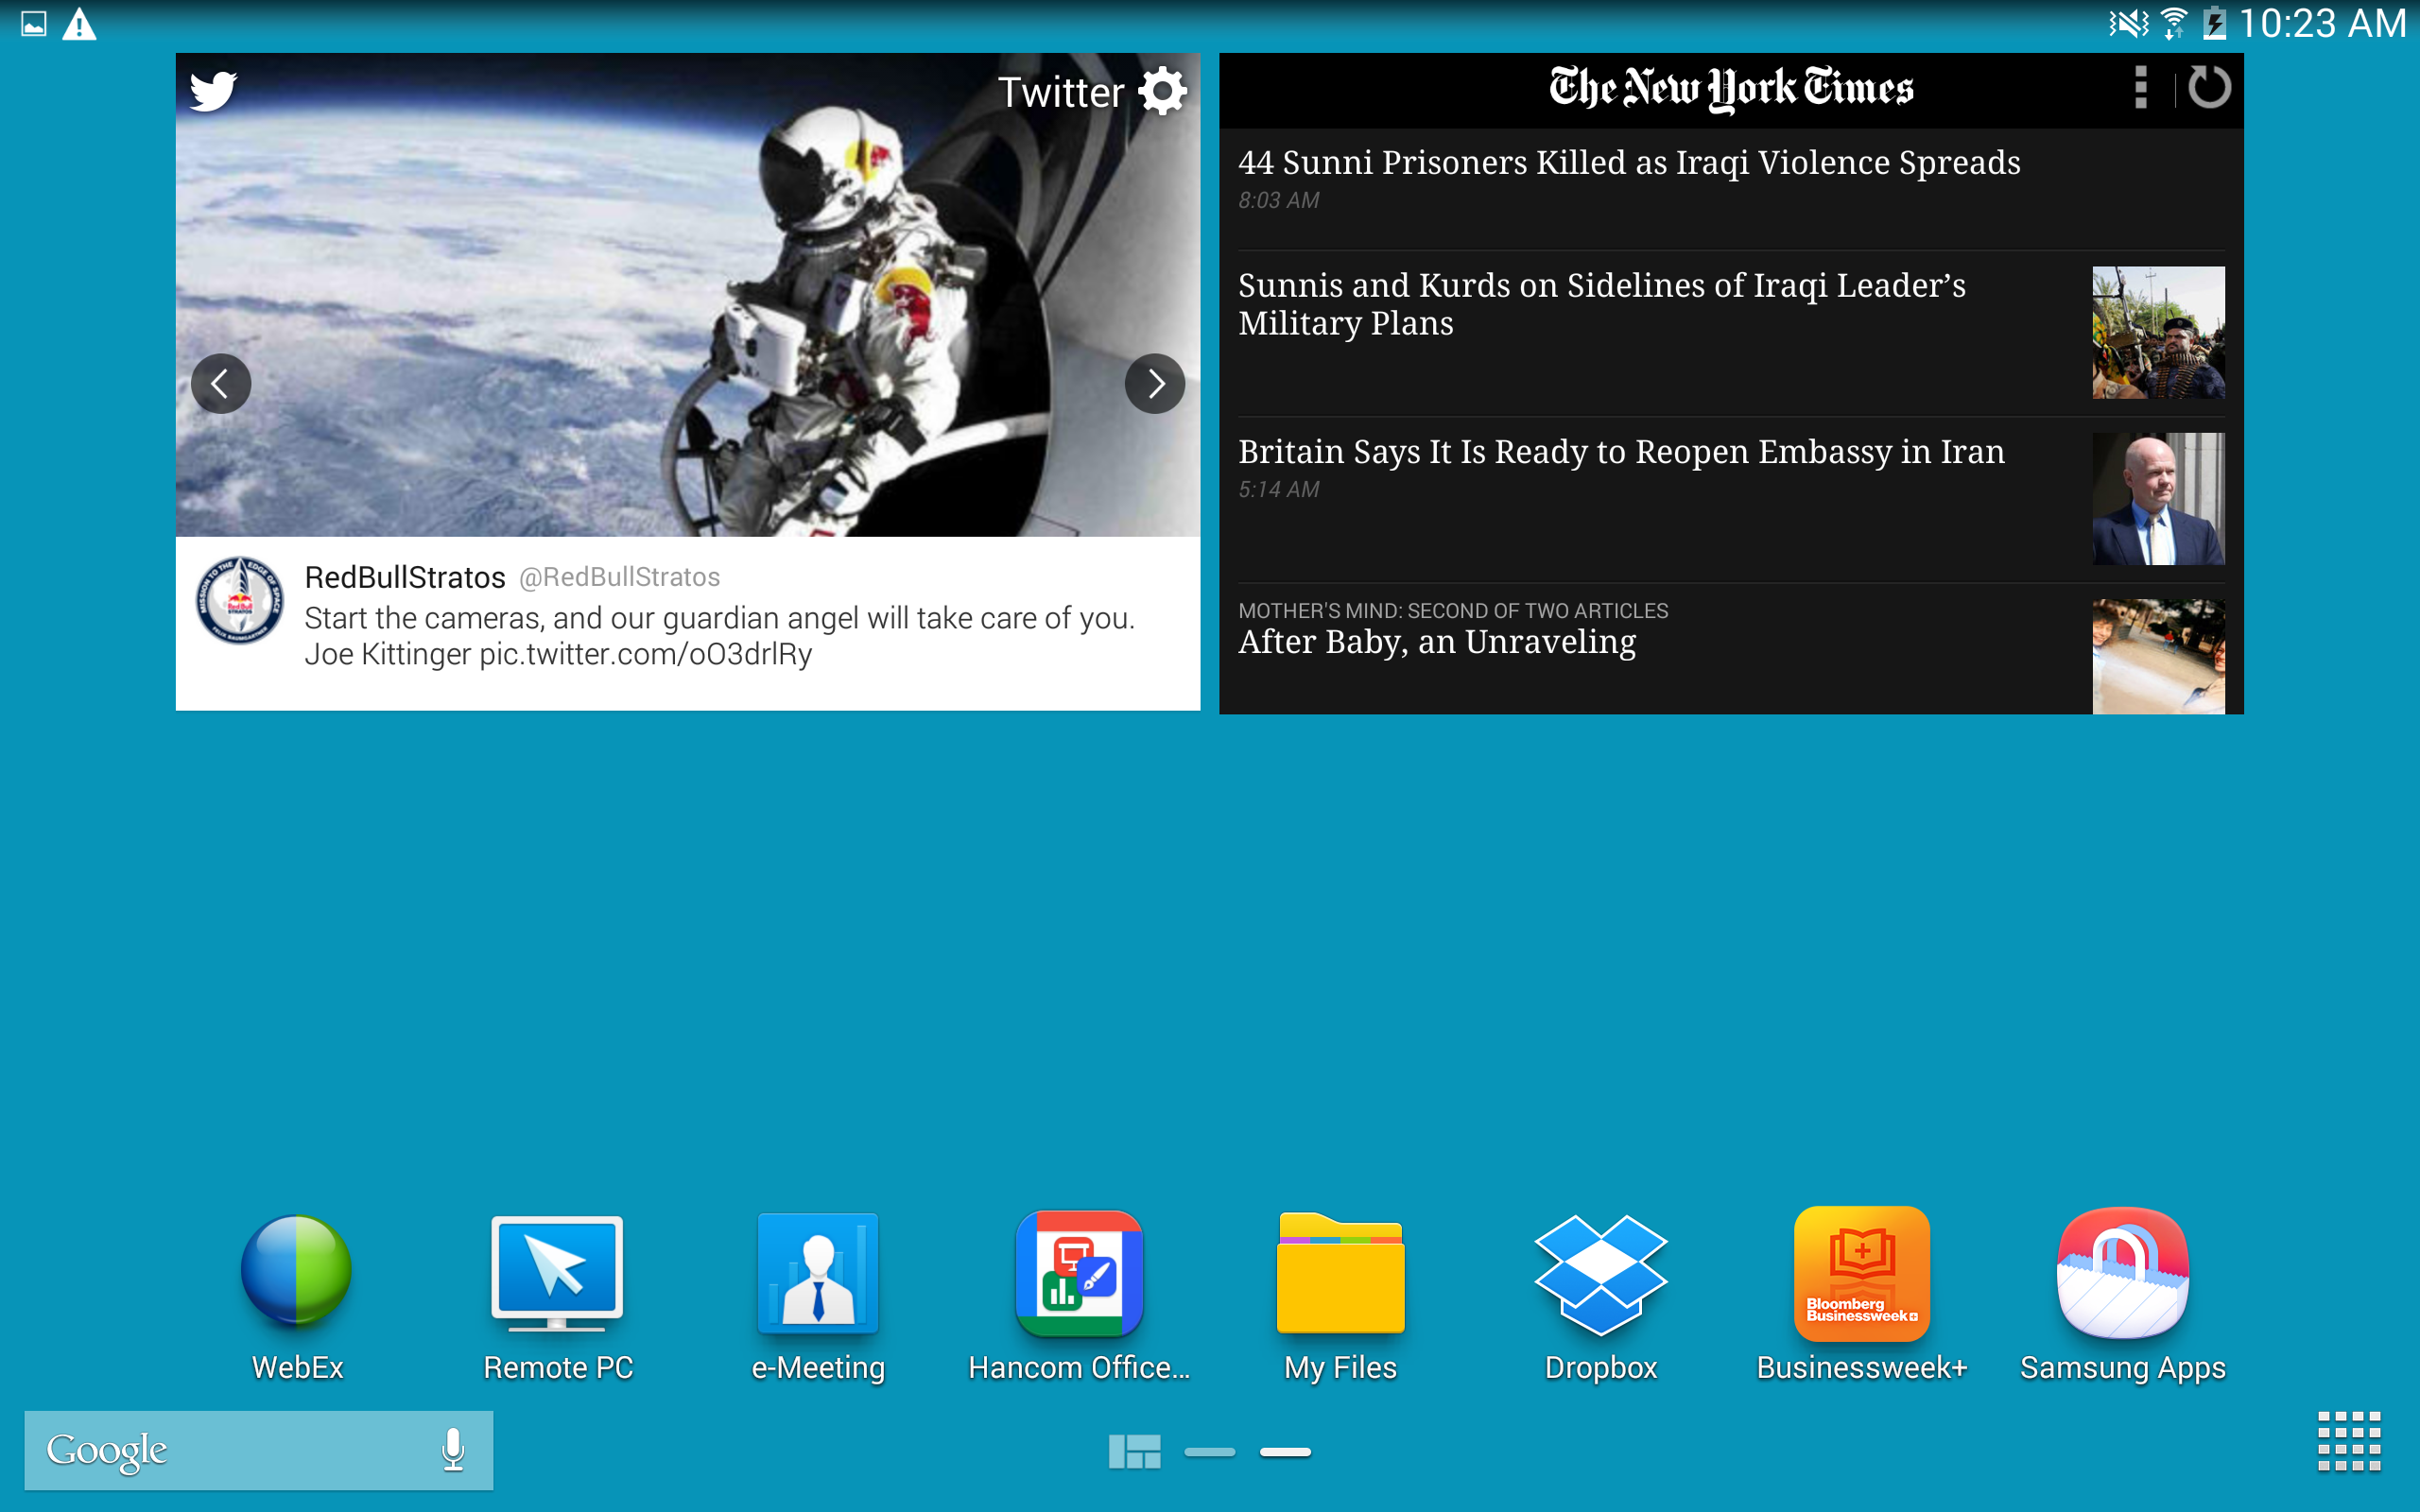 A screenshot of the Samsung Galaxy Note Pro's home screen.